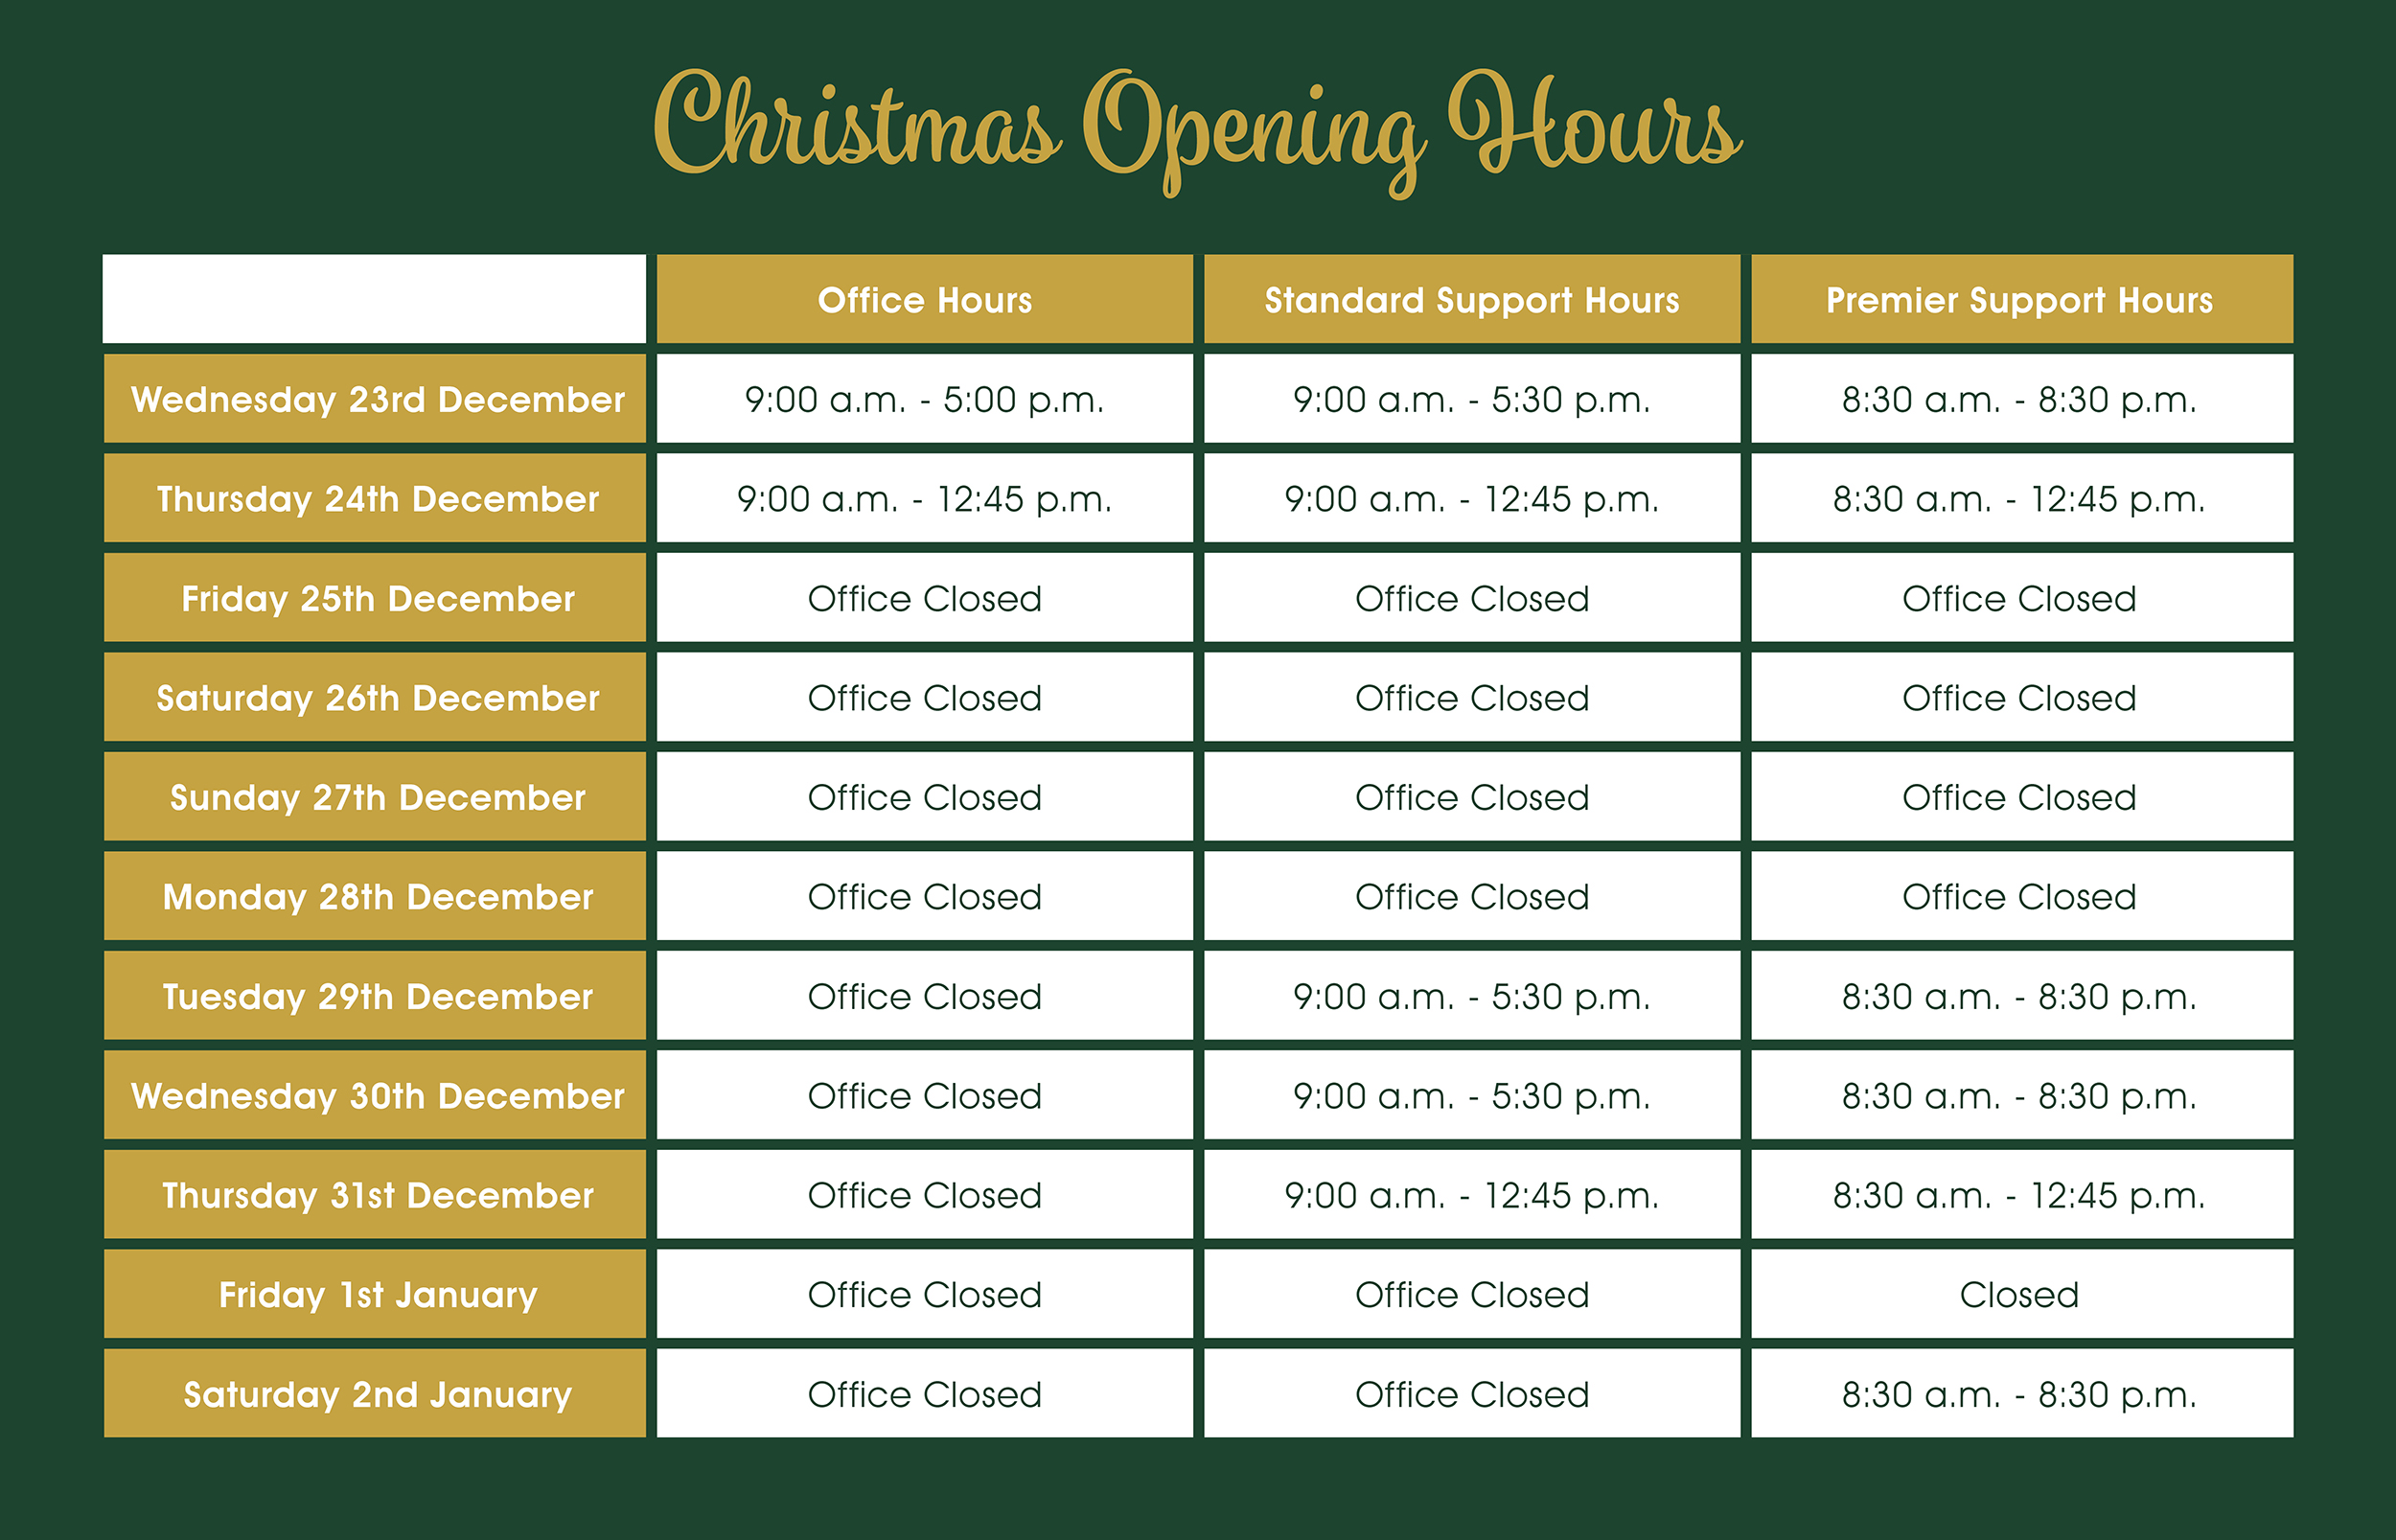 Christmas Opening Hours at Premier Software